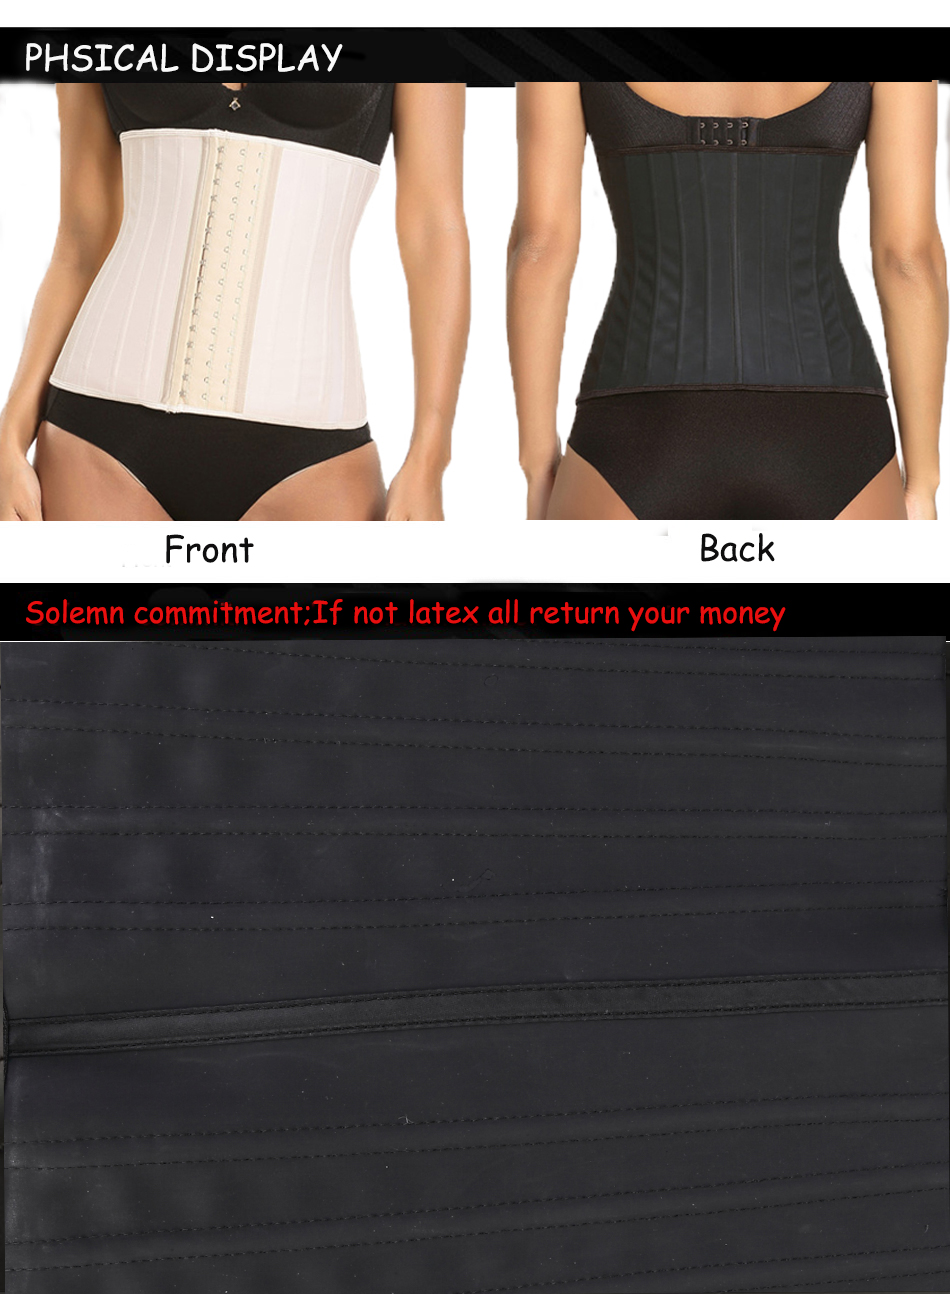 25 Steel Bones Posture Corrector Belt with Three Row Buckle Design Made of Pure Natural Rubber Fabric for Female 18